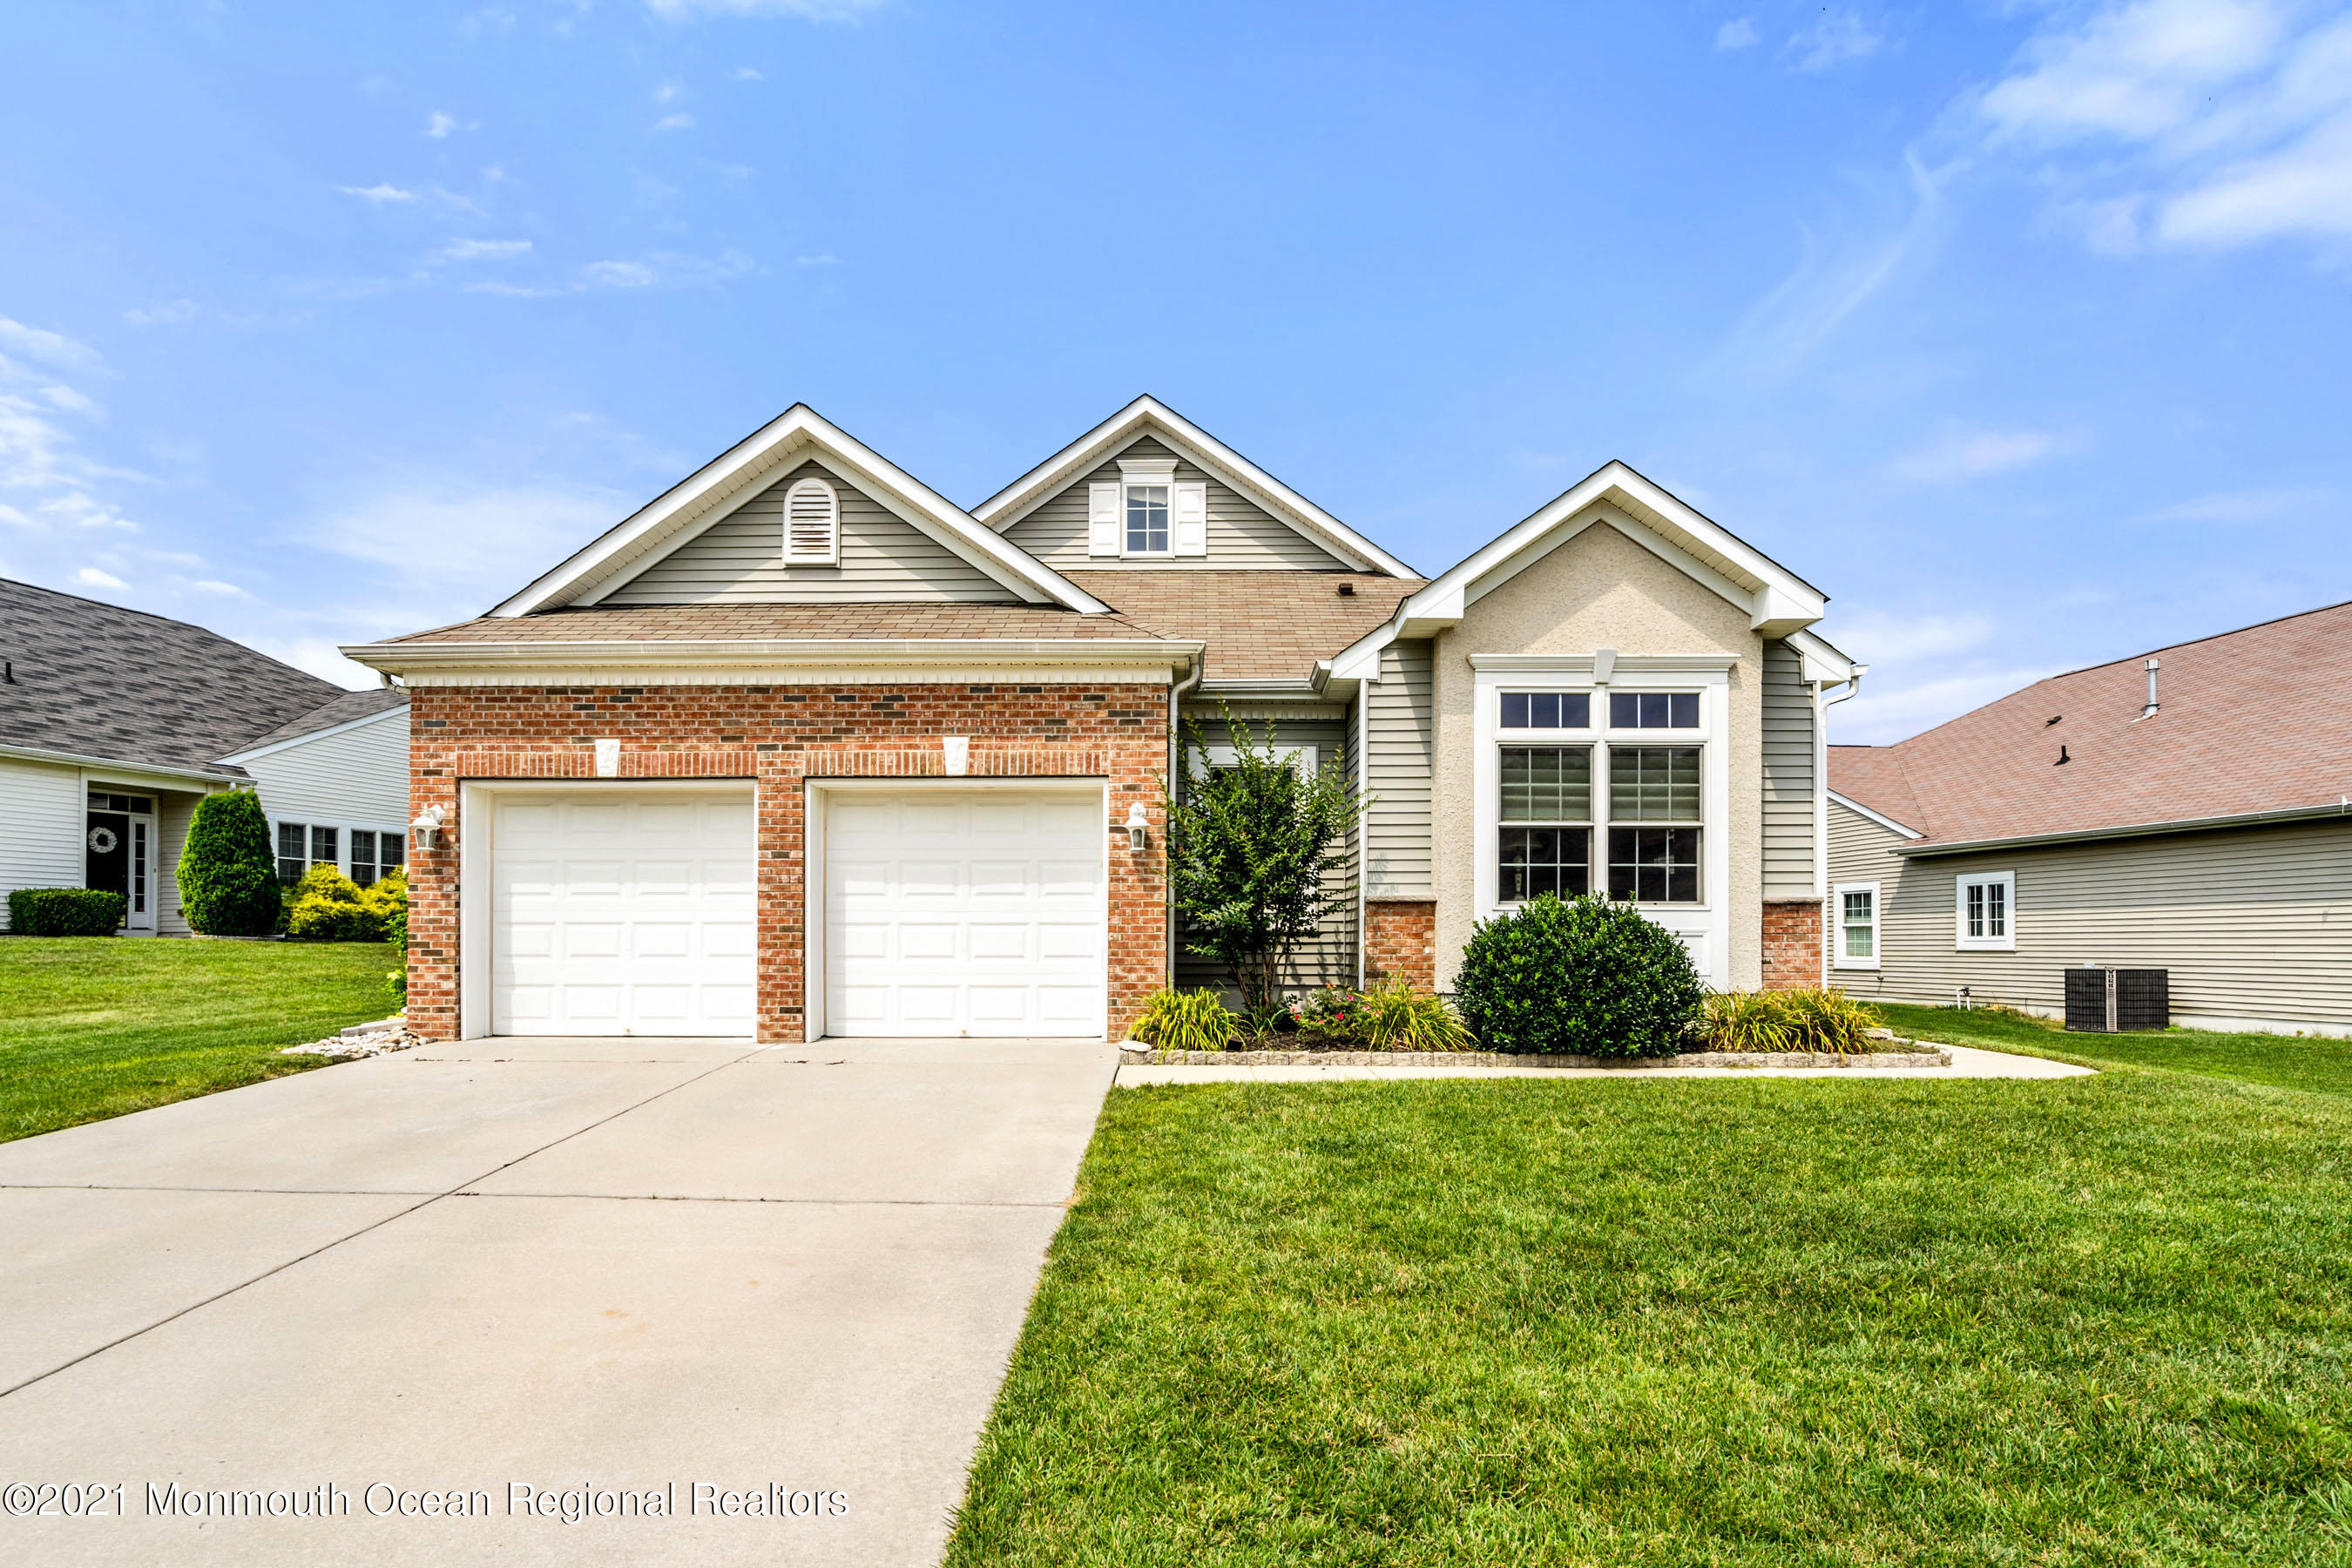 Welcome to this rare find Catalina model in Greenbriar Oceanaire Golf & Country Club.  This lovely 2 bdrm, 2 ba home has an extra bonus room that can be used as an office or 3rd bdrm. The attractive Kitchen has S/S appl, White Cabinets, Granite Counters and a Center Island.  The Dinette has a sliding door that leads to the patio w an electric awning in a very private setting with beautiful tall trees. From the large family room you enter the sunroom with skylights and arched windows. The master bedroom has a bonus sitting room, an oversized custom walk-in closet and beautiful master bath with double sinks and a whirlpool tub.  The large guest room also has a walk-in closet. The garage has a ceiling mount heater.  All appliances and blinds are included in this charming home.